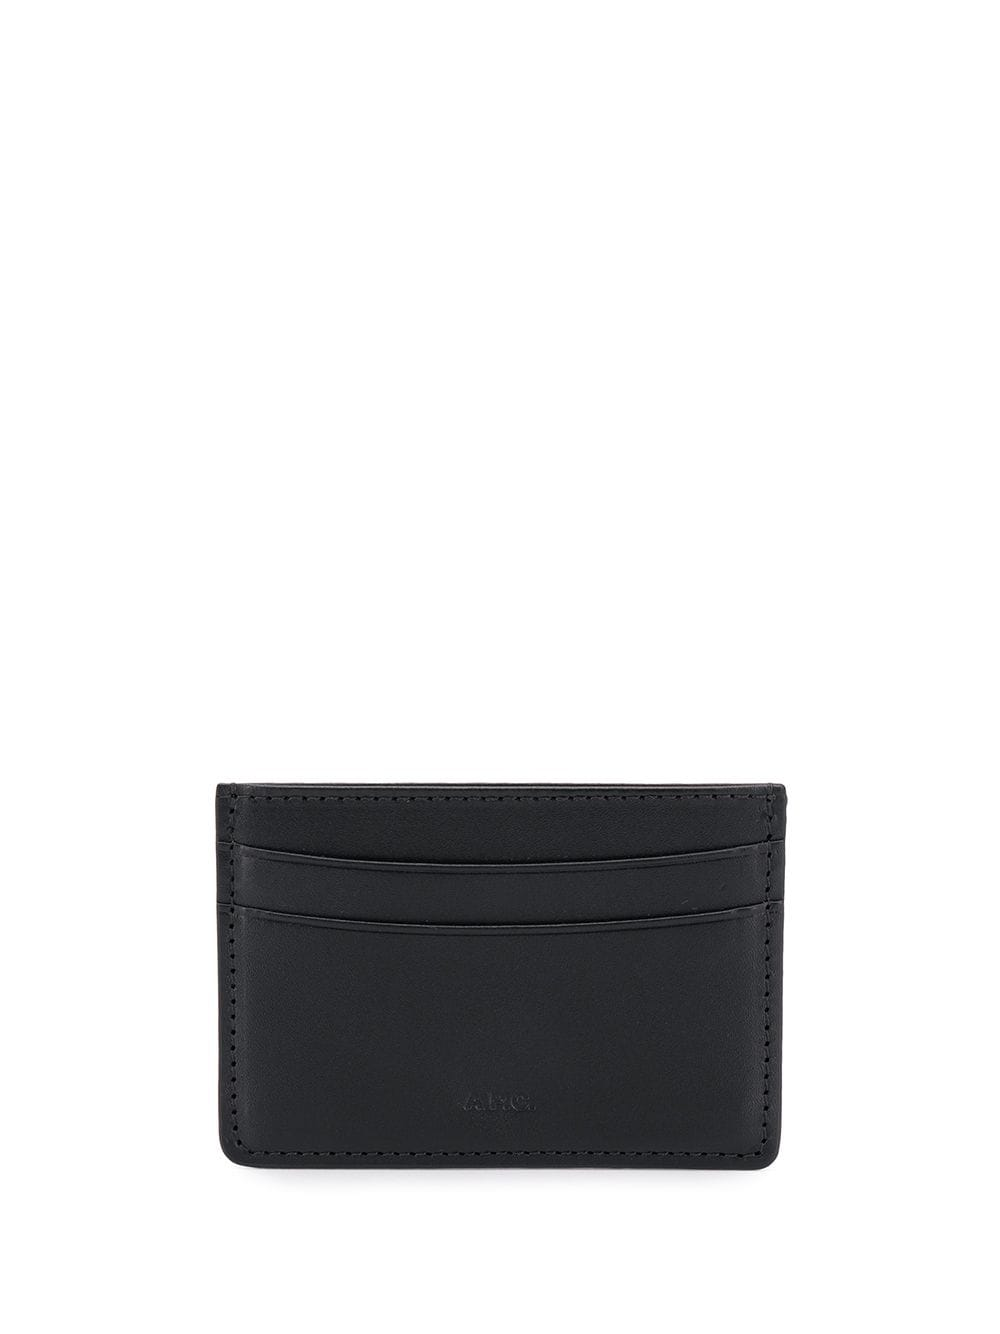 A.P.C. | Wallets | PXAWV-H63028LZZ